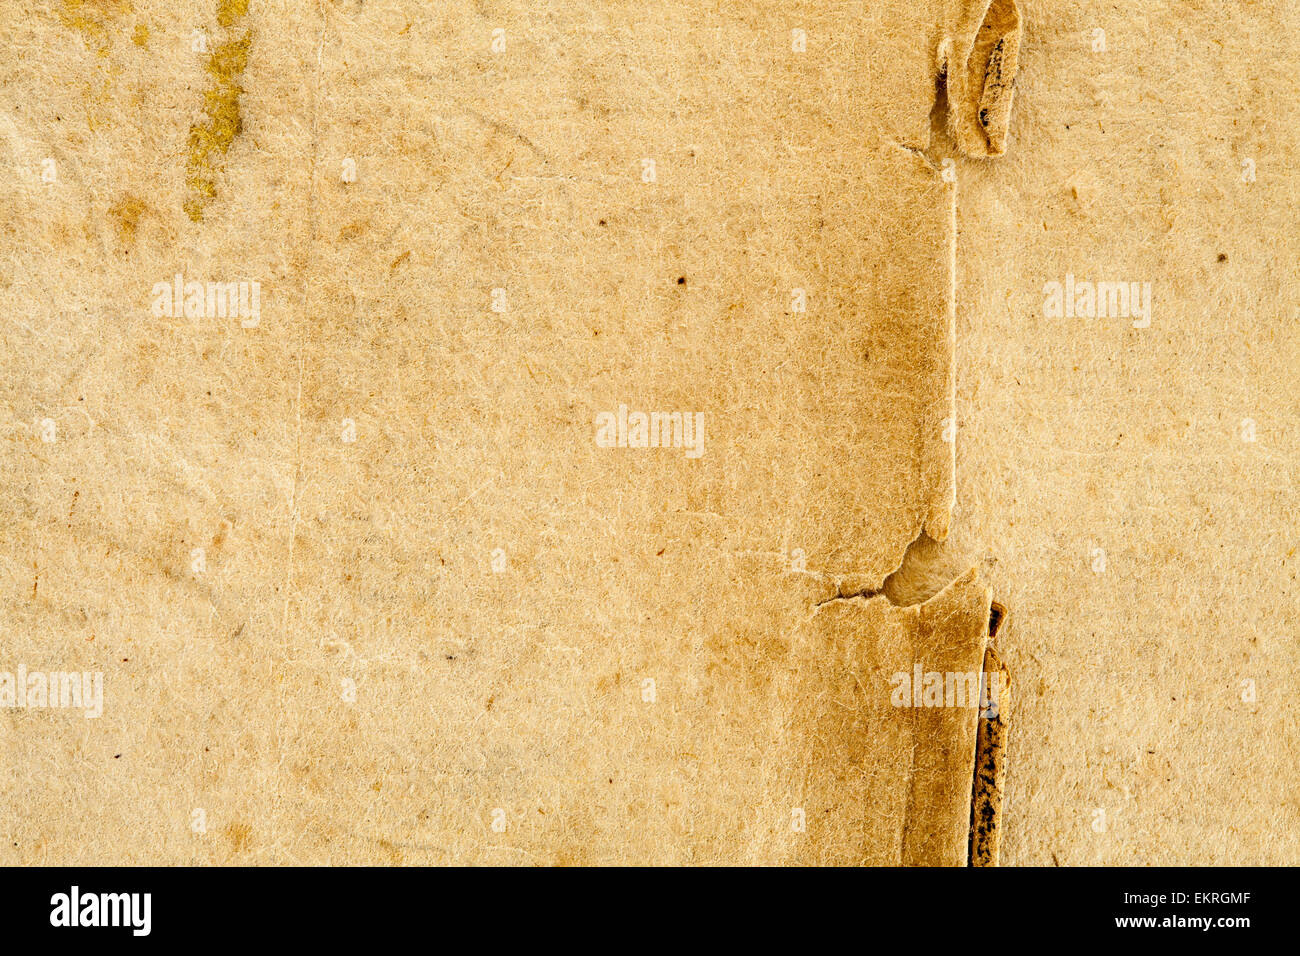 1614 Vintage Antique Retro French Parchment Paper Background In Beige Tan